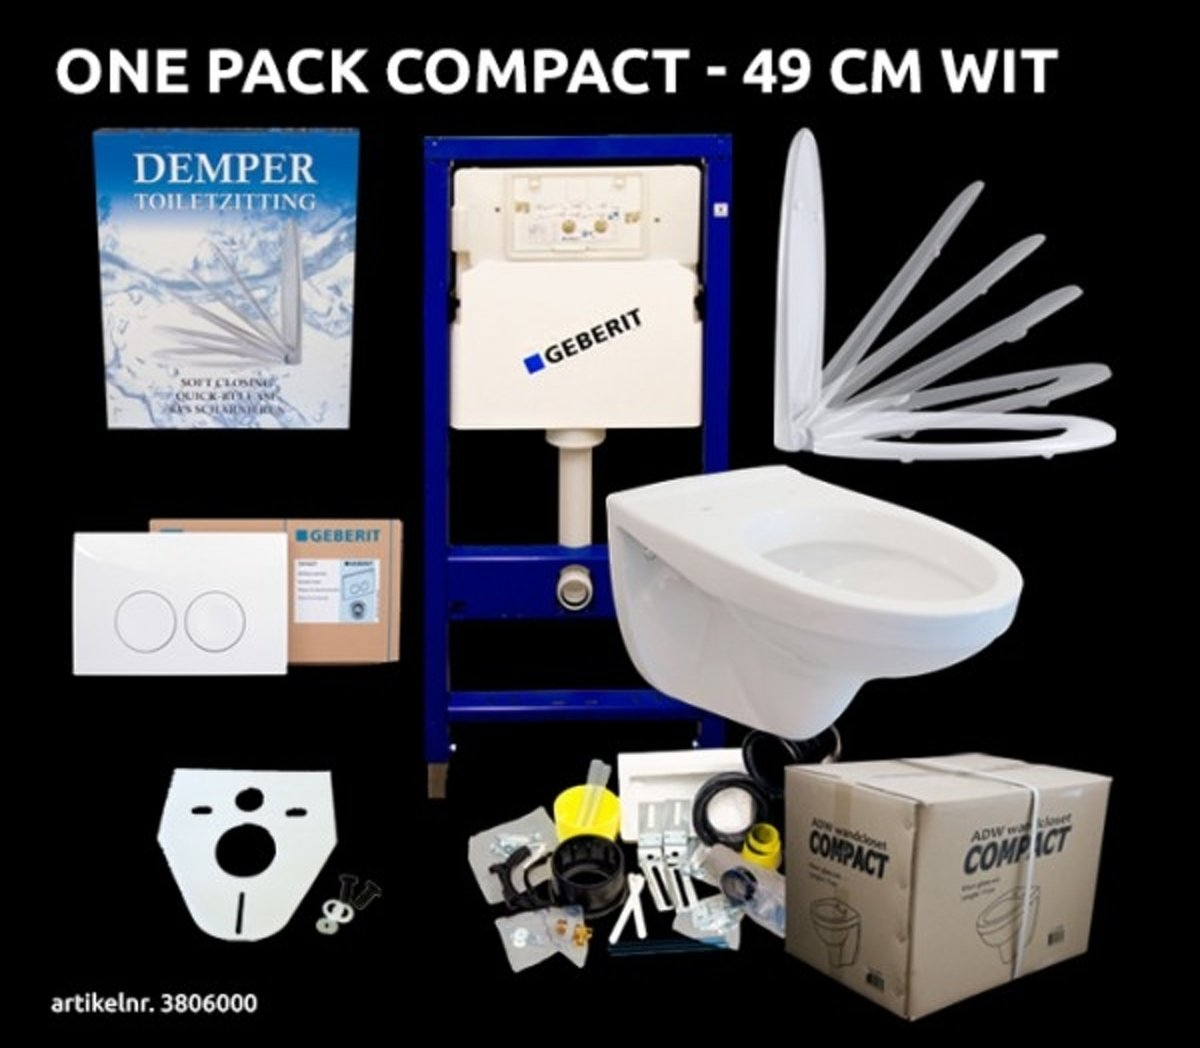 Compact Hangtoilet Geberit One Pack Compact 49 Cm Wit